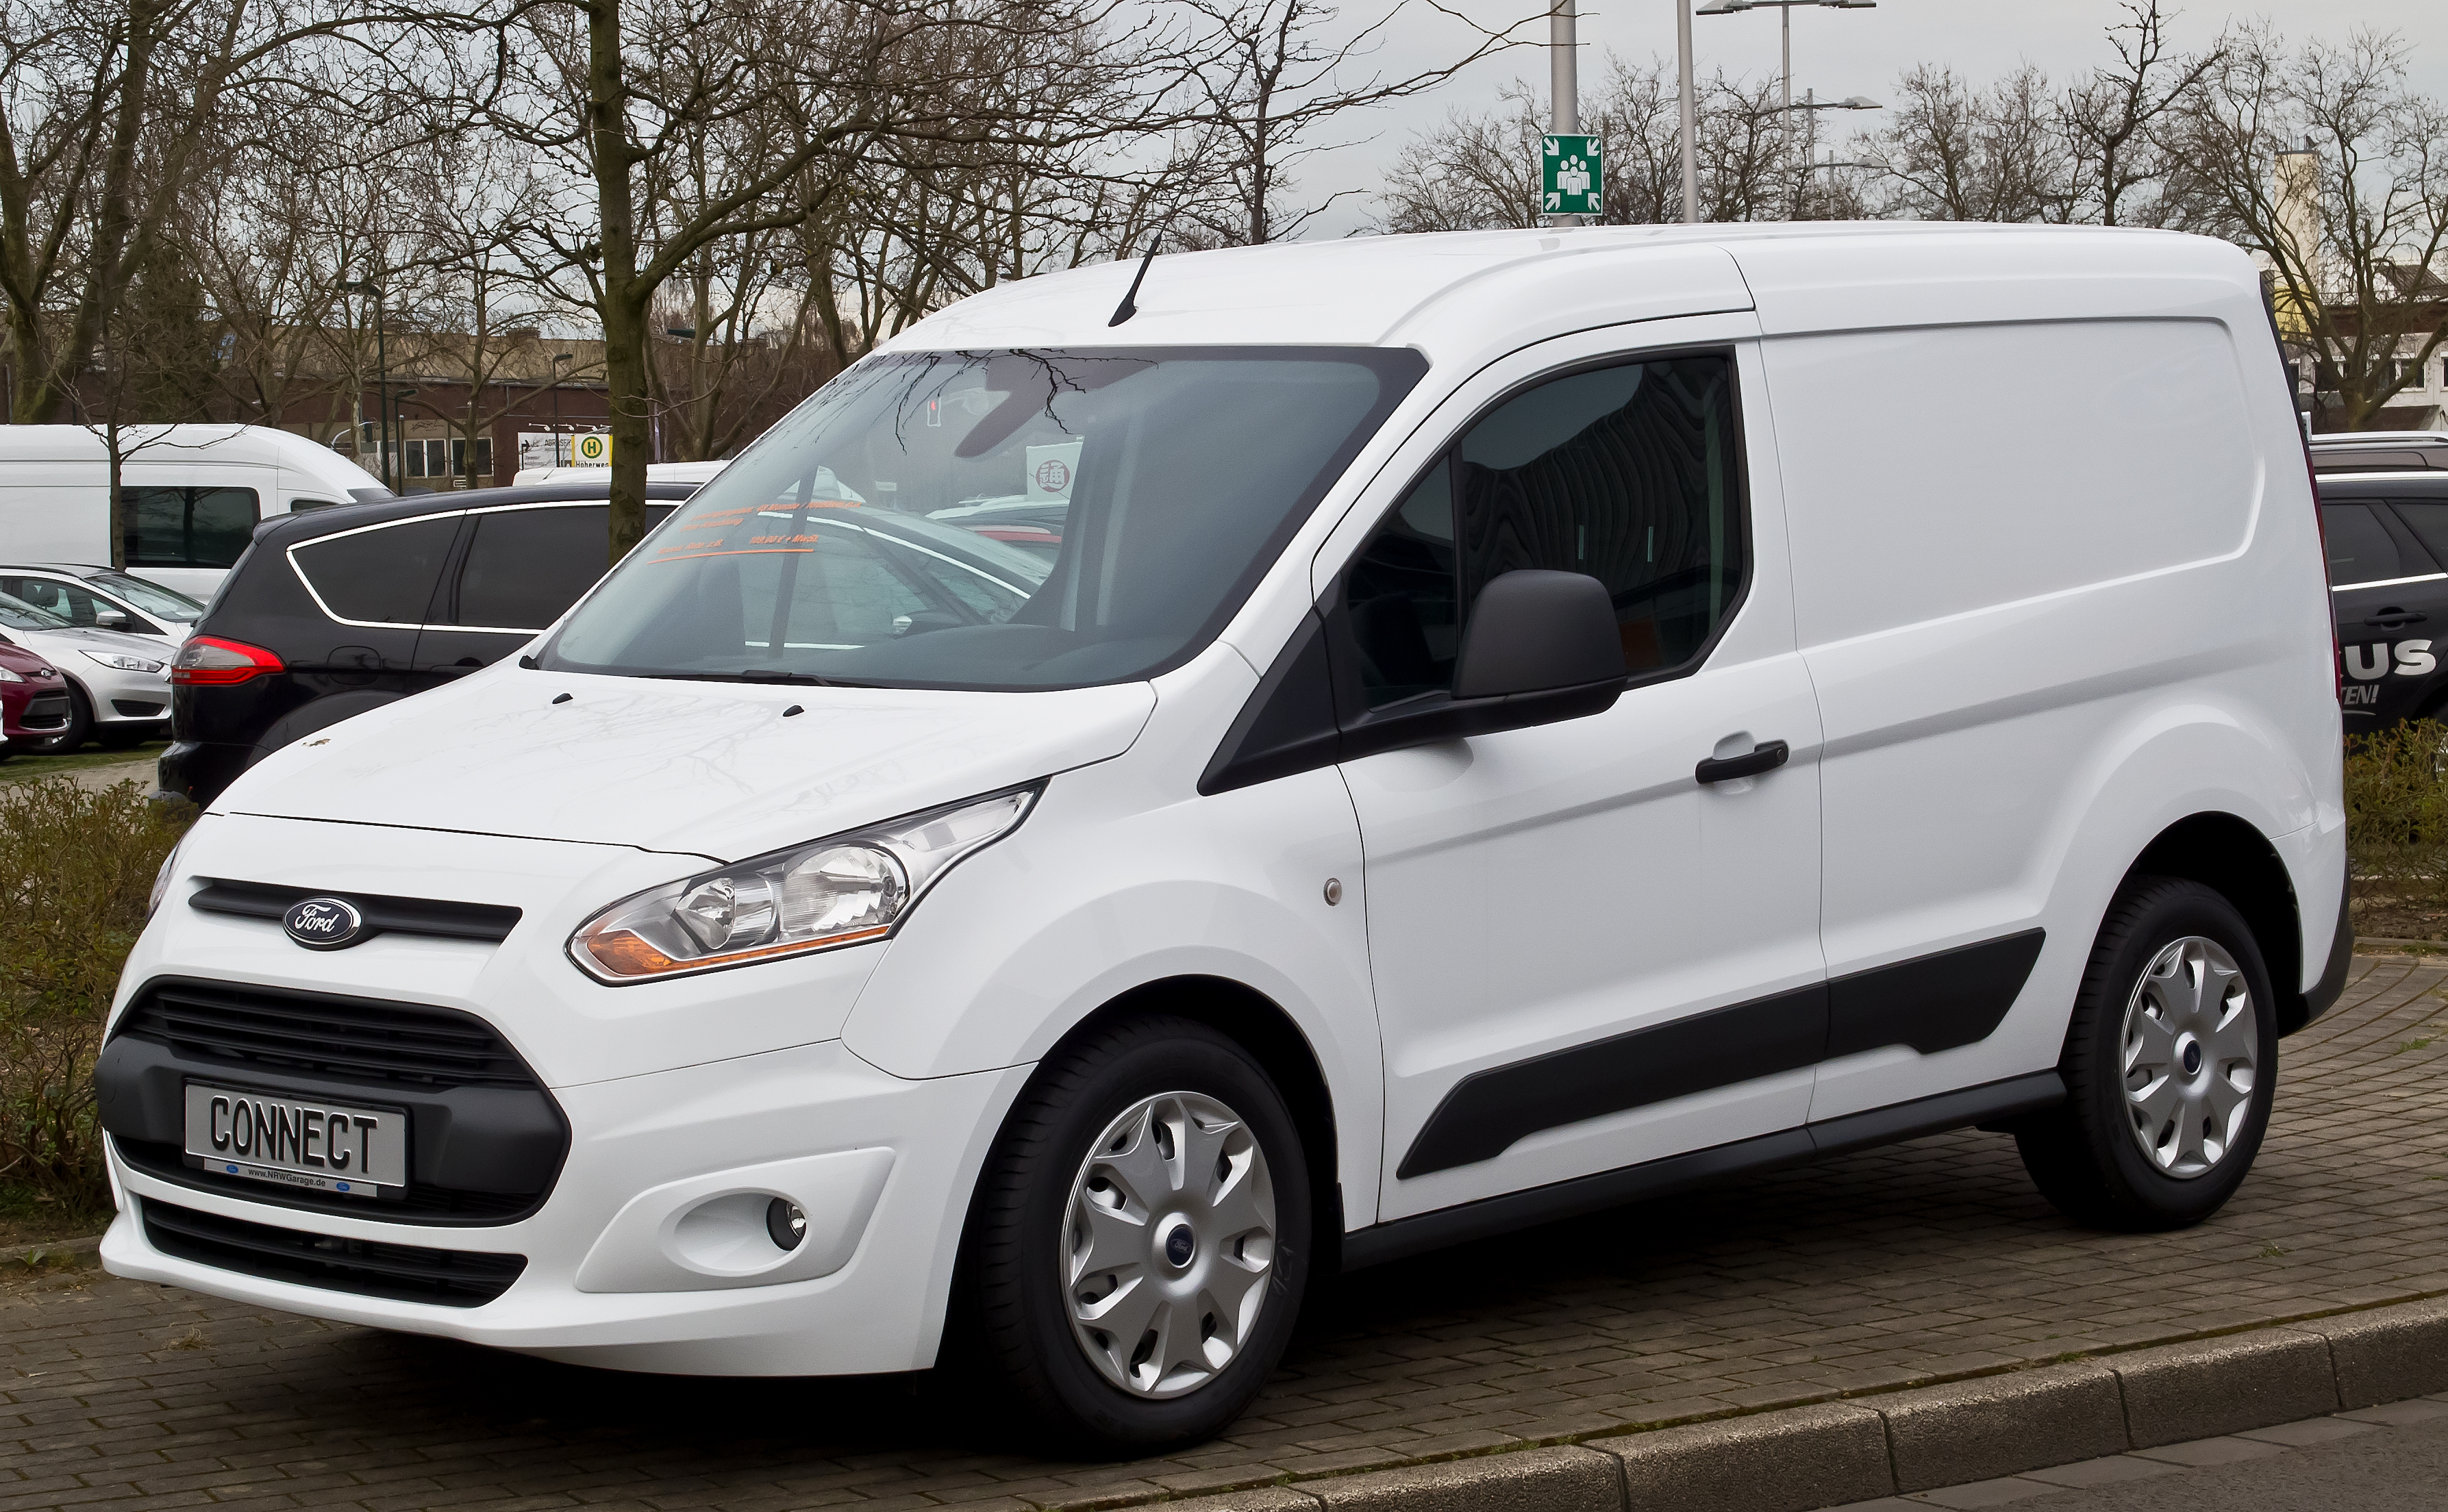 Ford_Transit_Connect_1.6_TDCi_(II)_–_Frontansicht,_3._April_2015,_Düsseldorf.jpg (3574×2208)